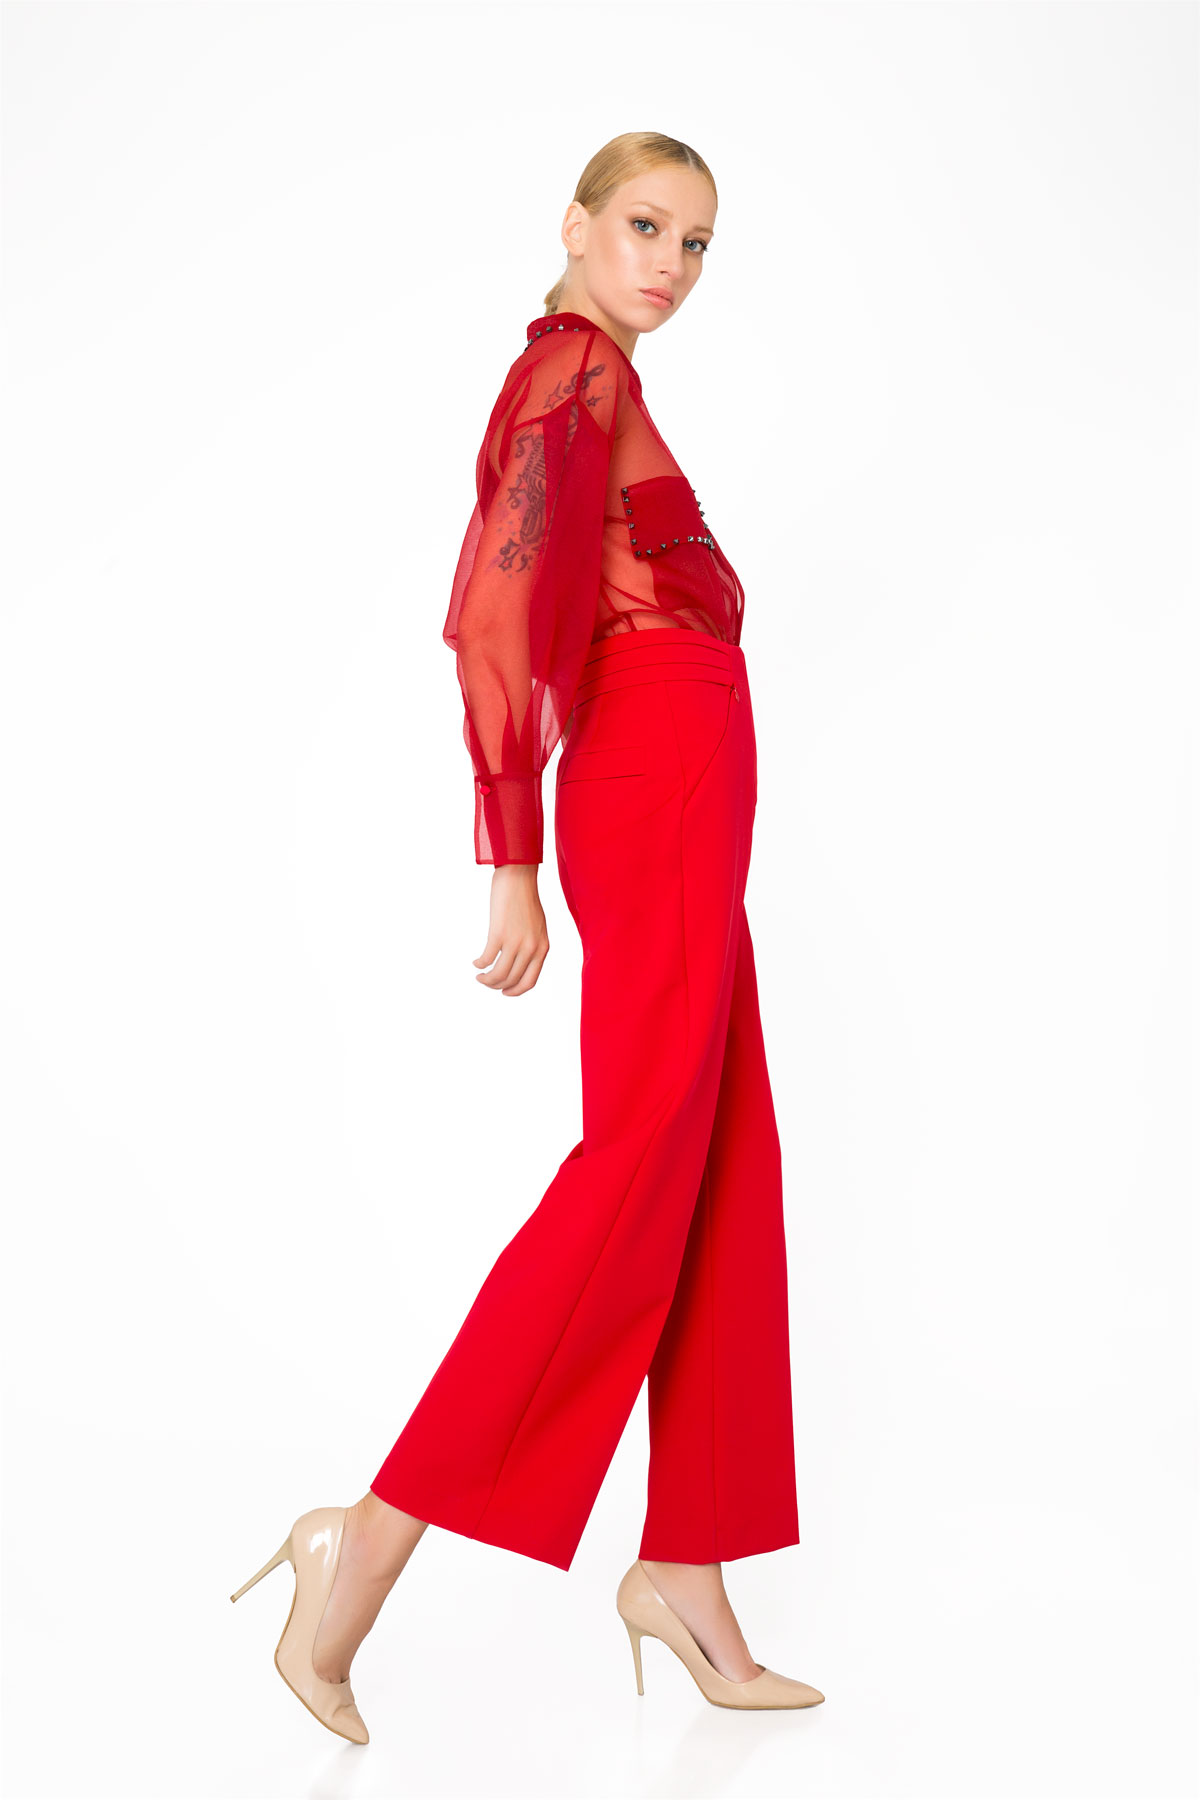 Pocket Detailed High Waist Red Trousers